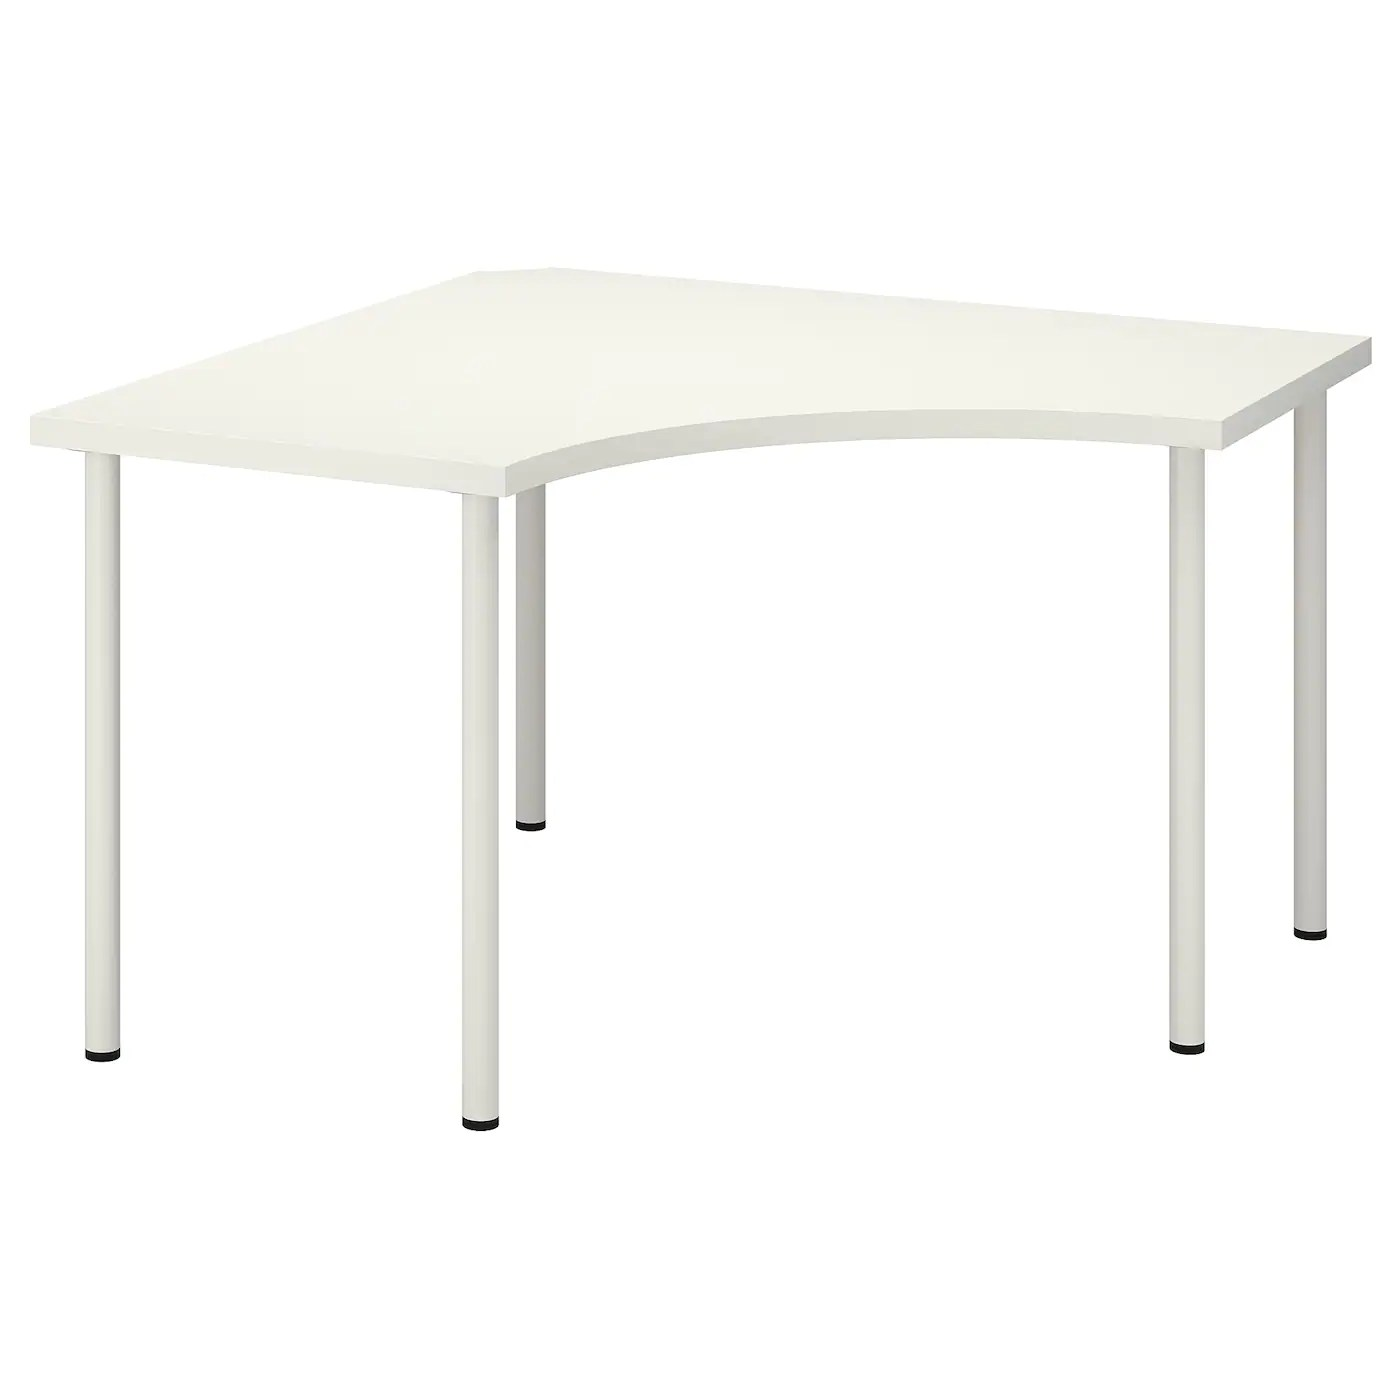 linnmon adils table d angle blanc 120x120 cm